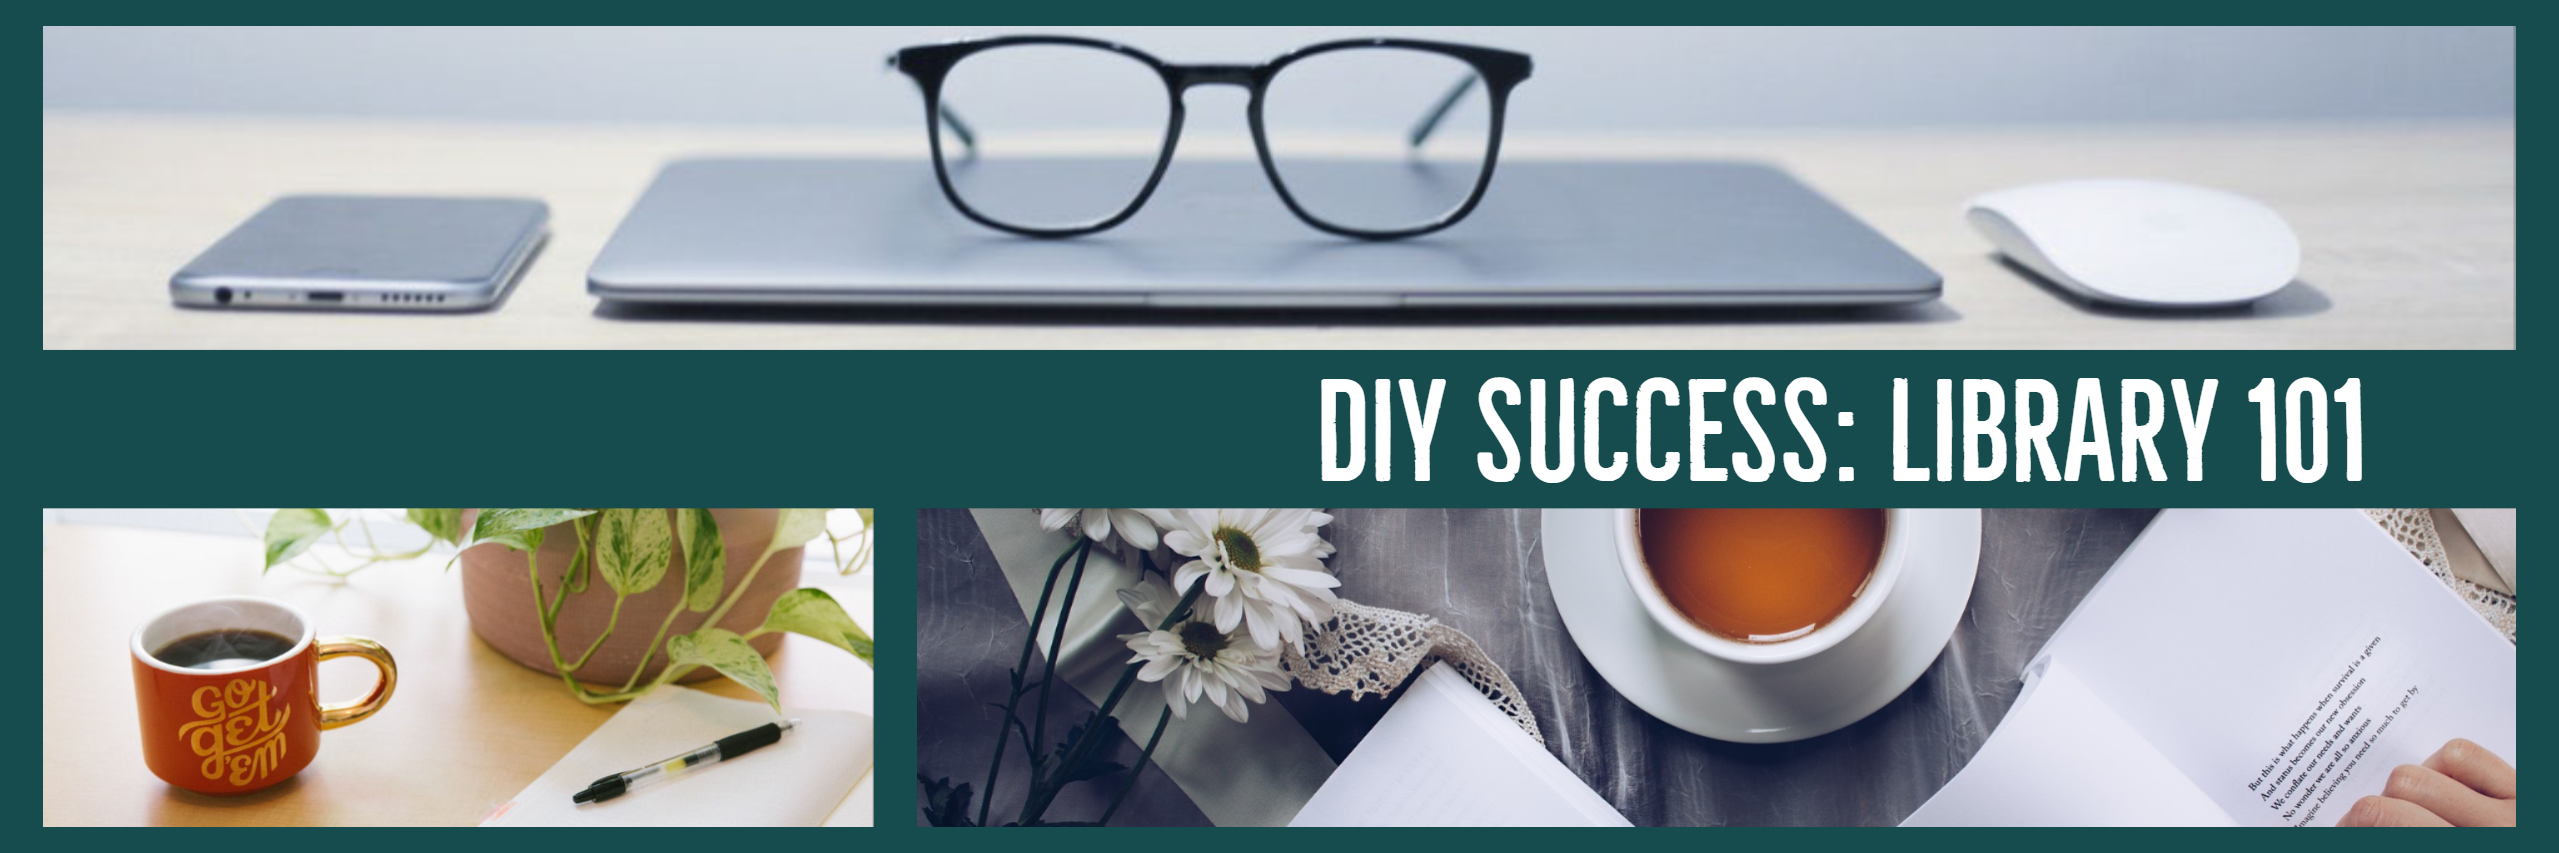 banner that reads diy success: library 101